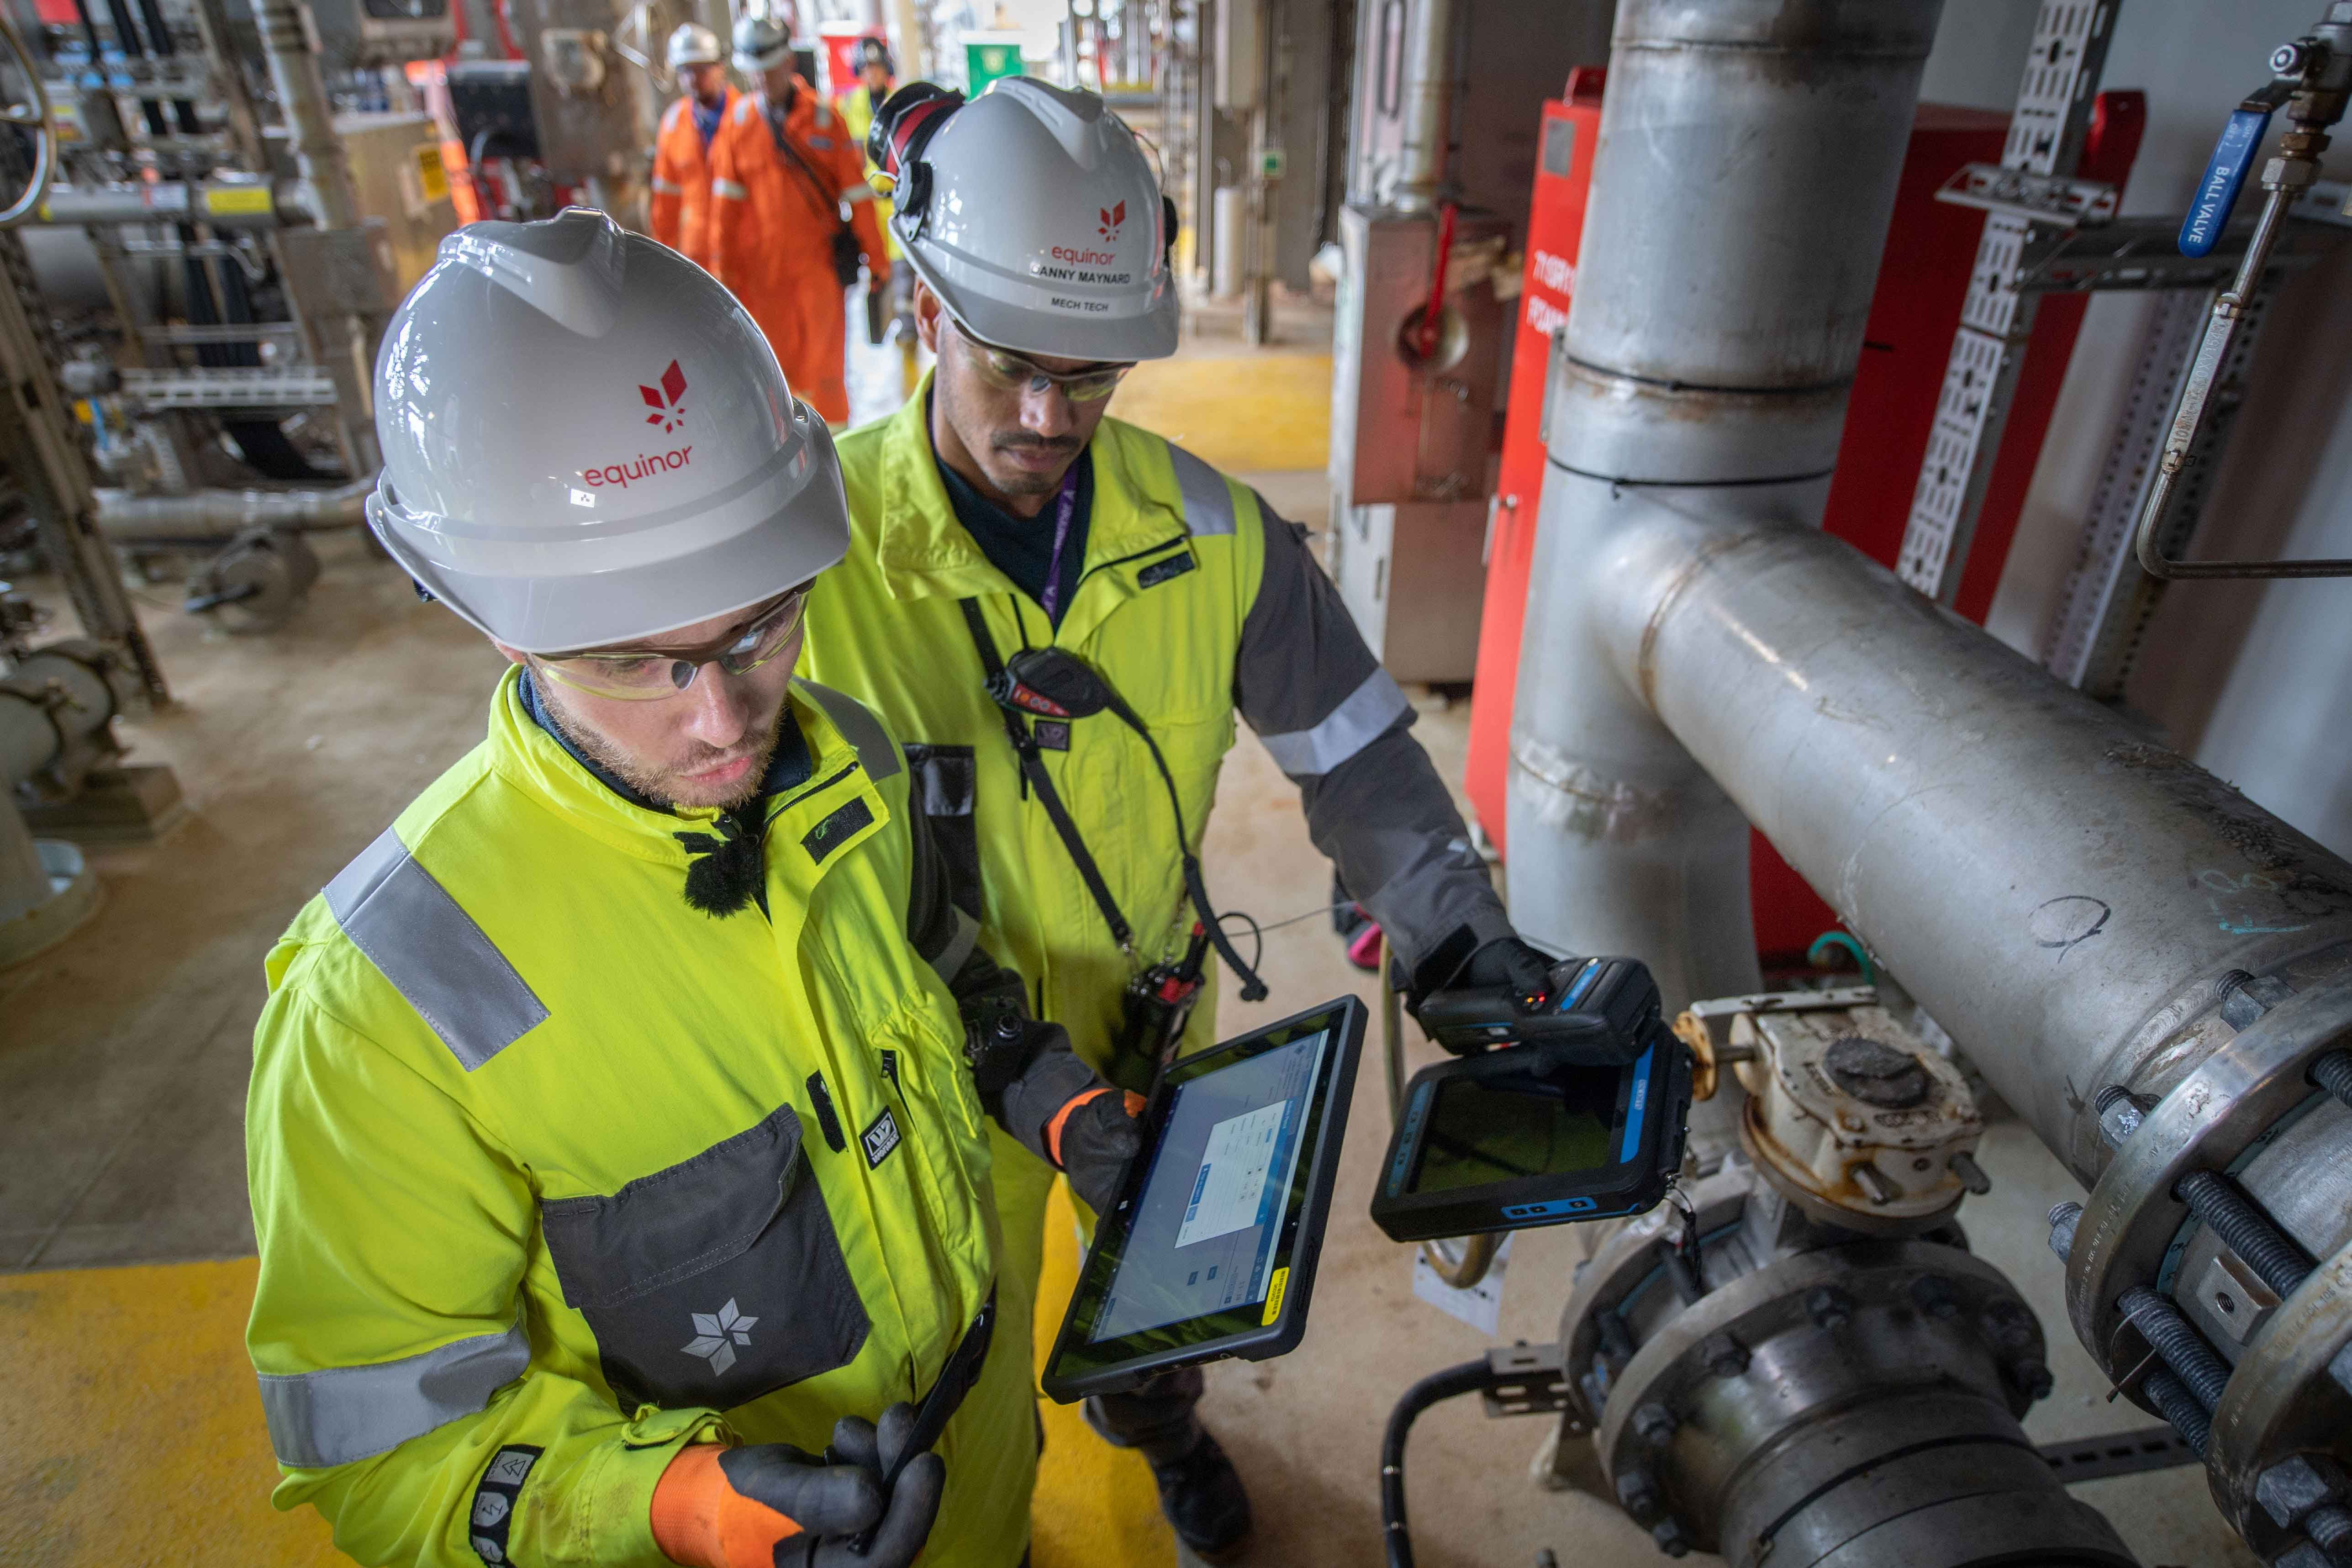 Equinor mariner works with EB